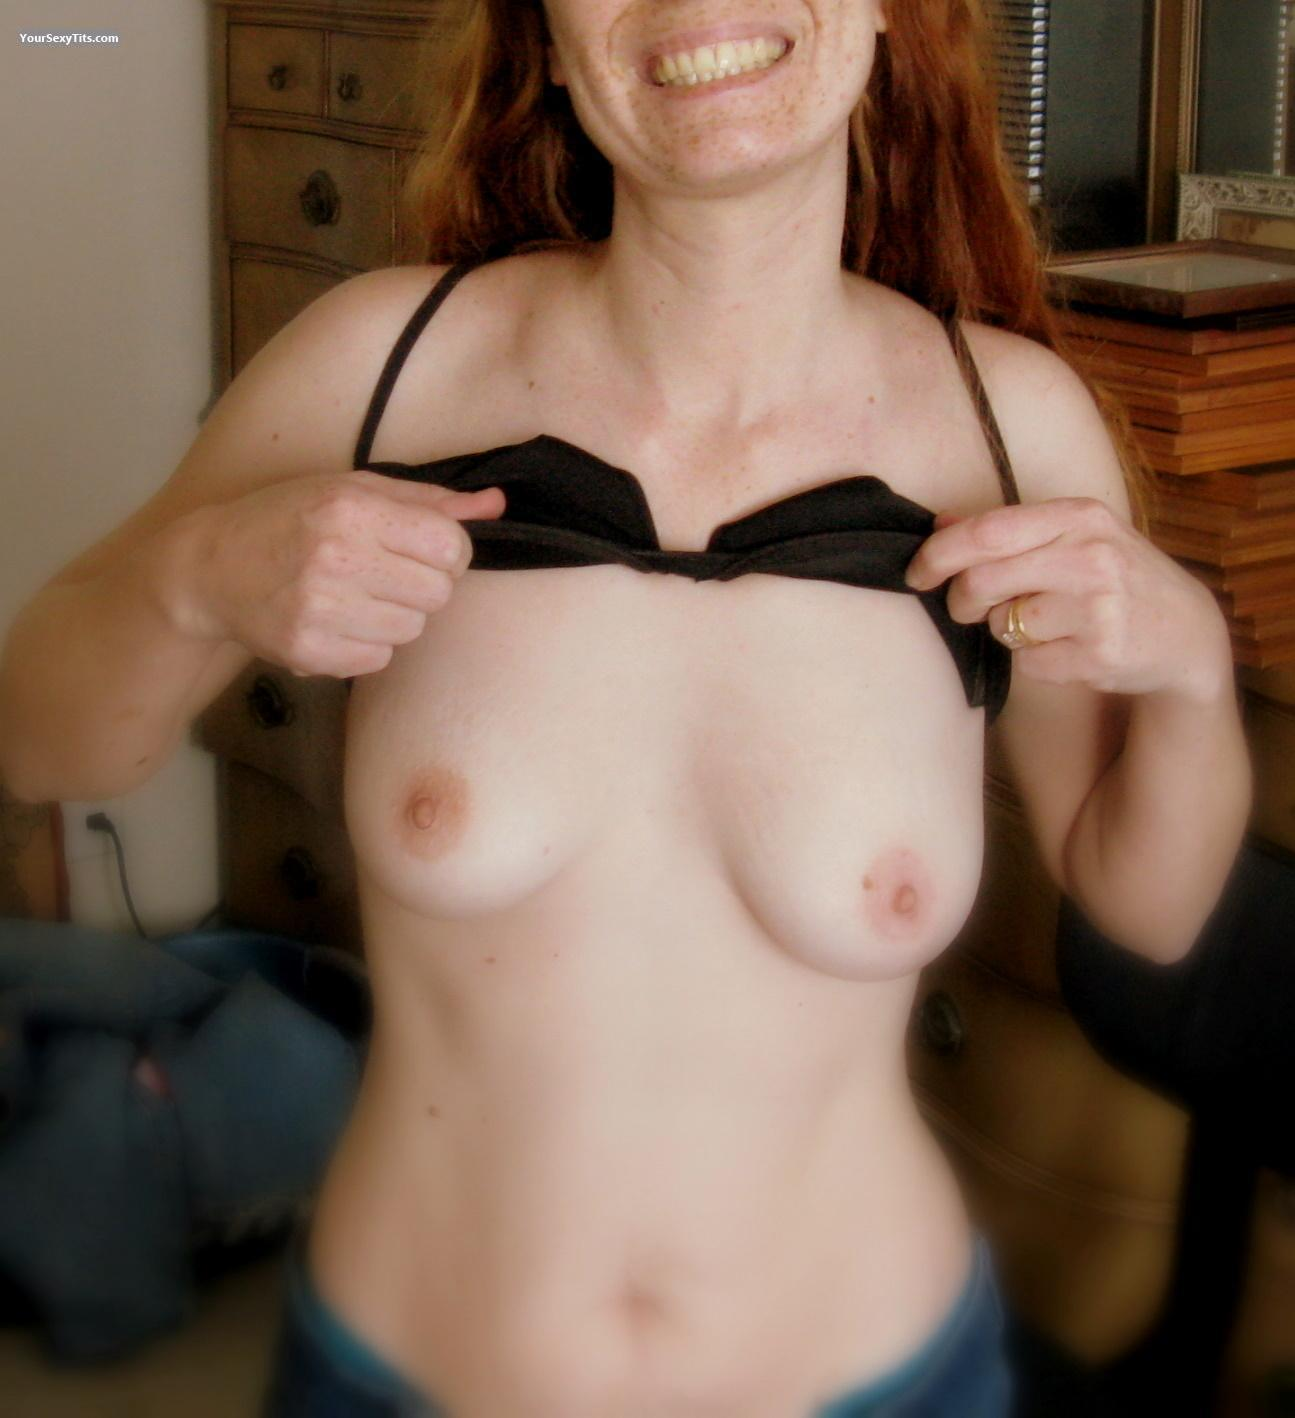 Tit Flash: Small Tits - Nicole from United States